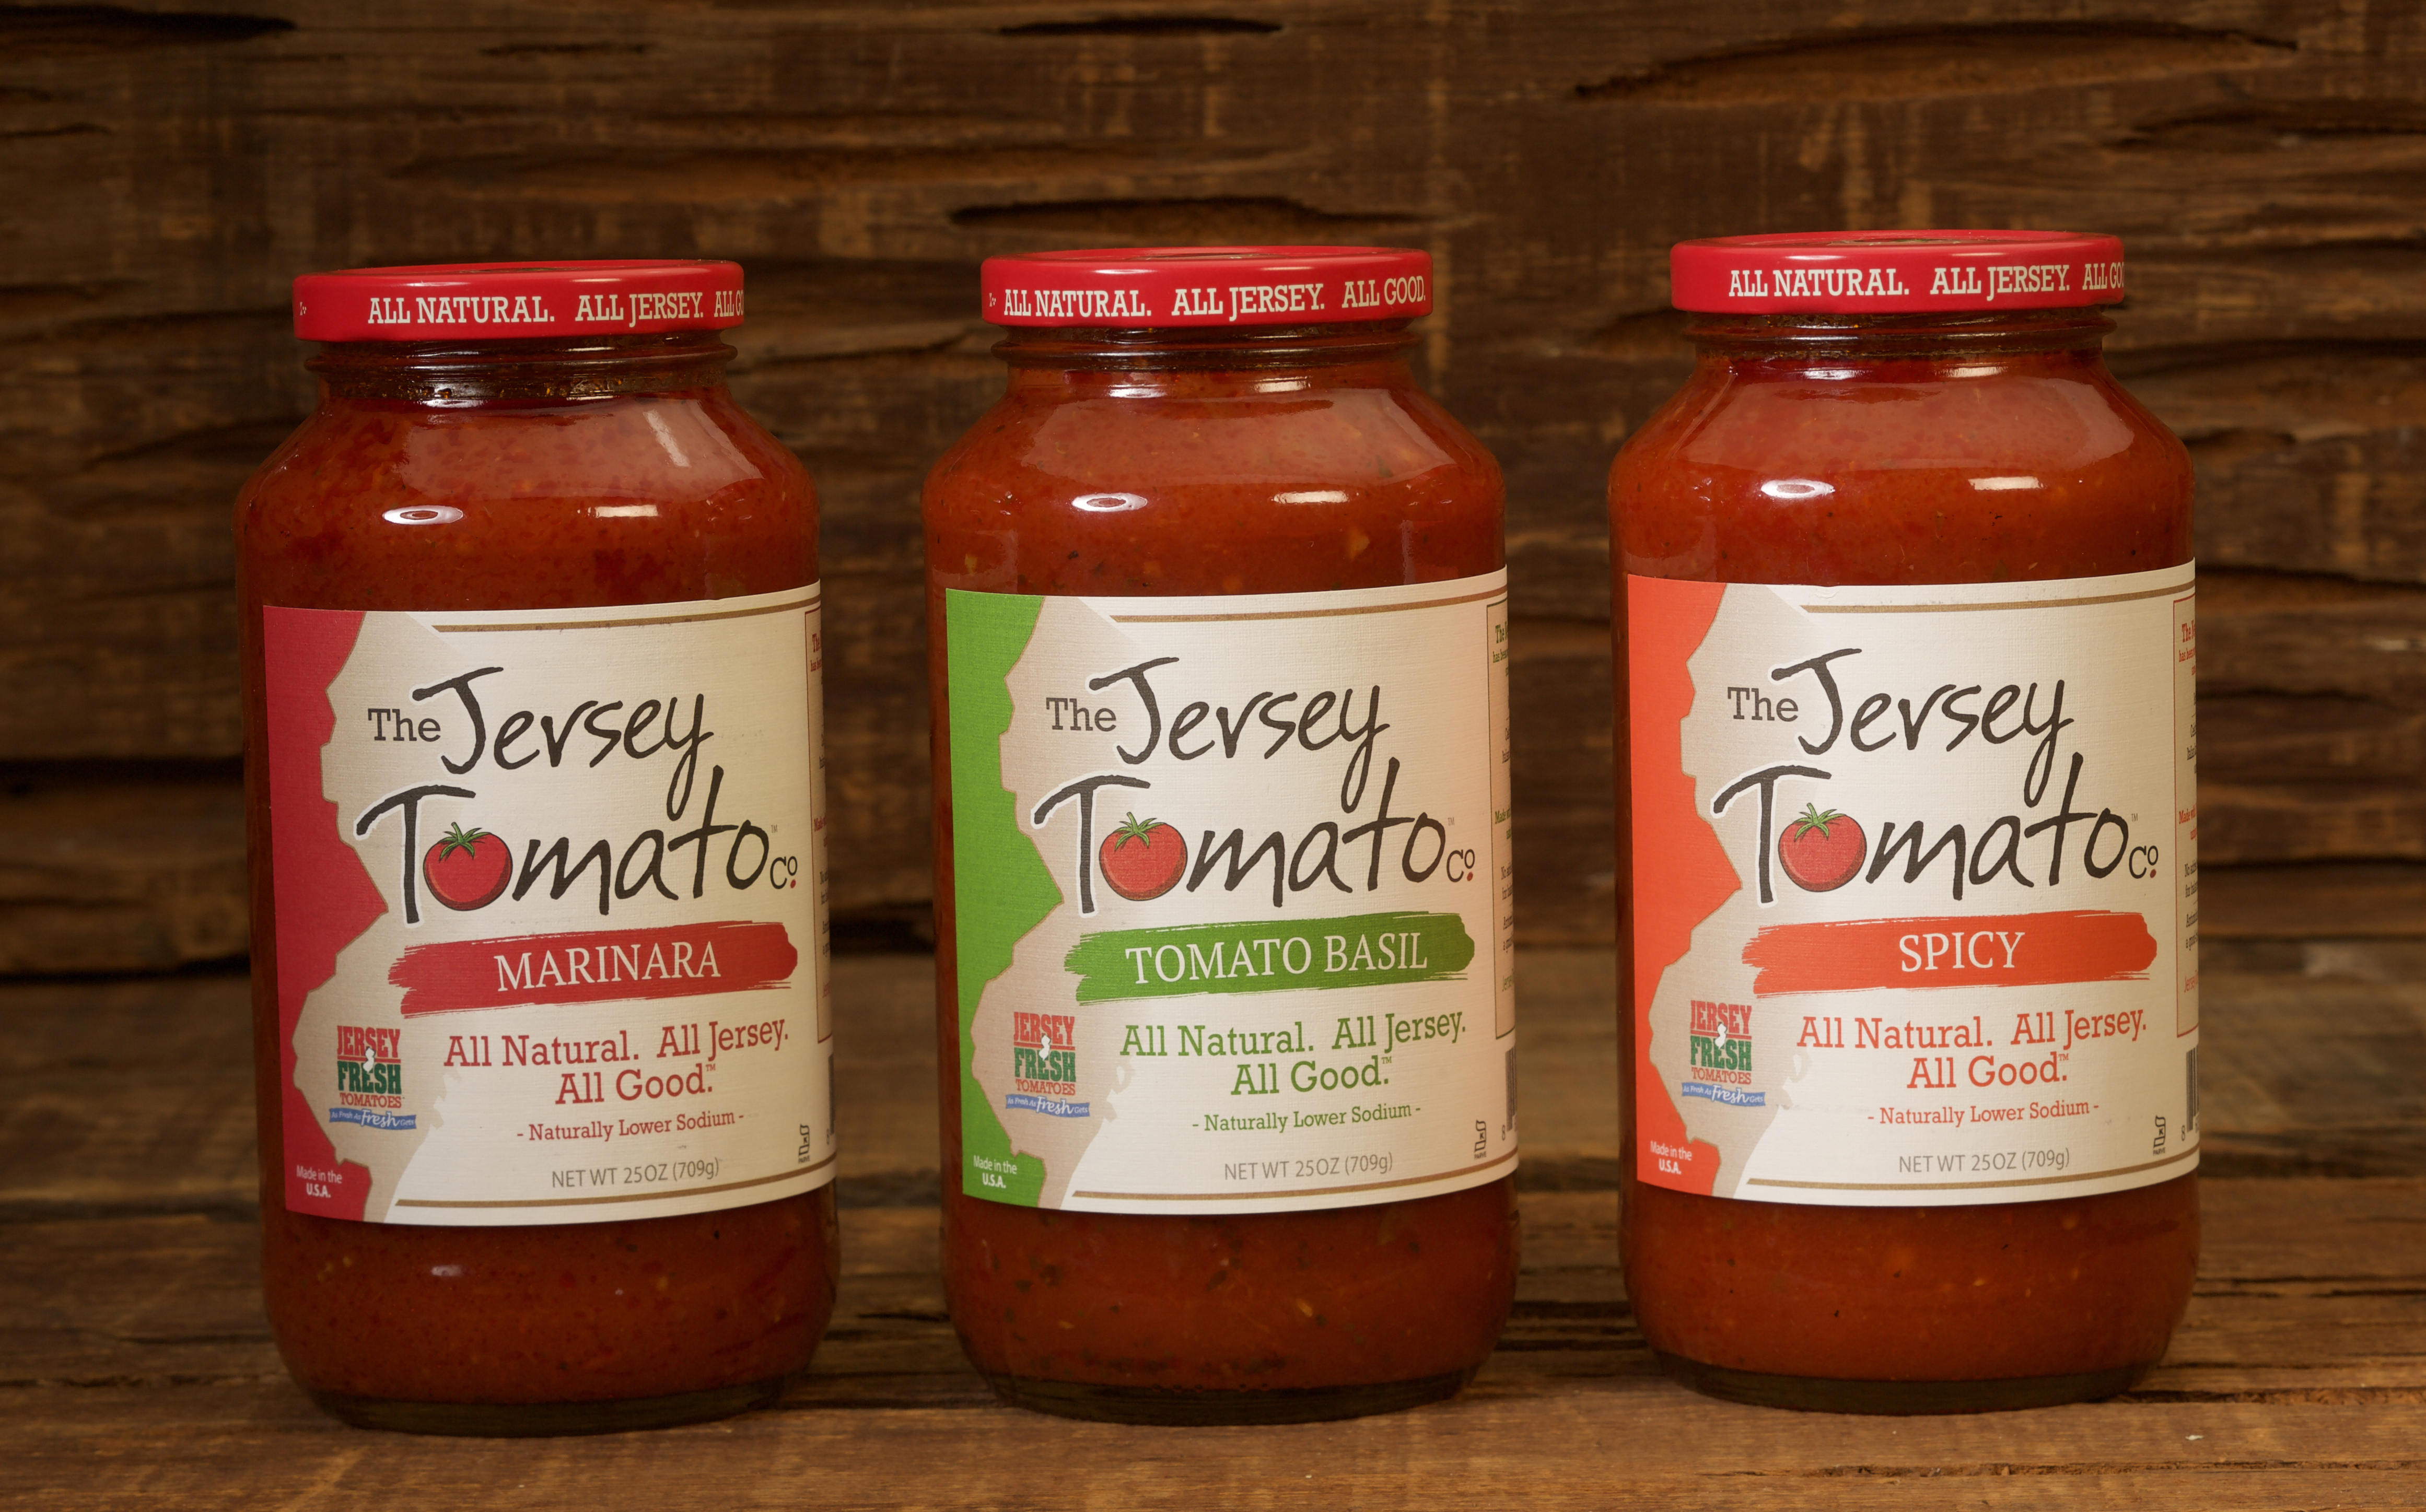 Three tomato sauces - Marinara, Tomato Basil & Spicy - from The Jersey Tomato Co. All Natural. All Jersey. All Good. (Photo: Business wire)